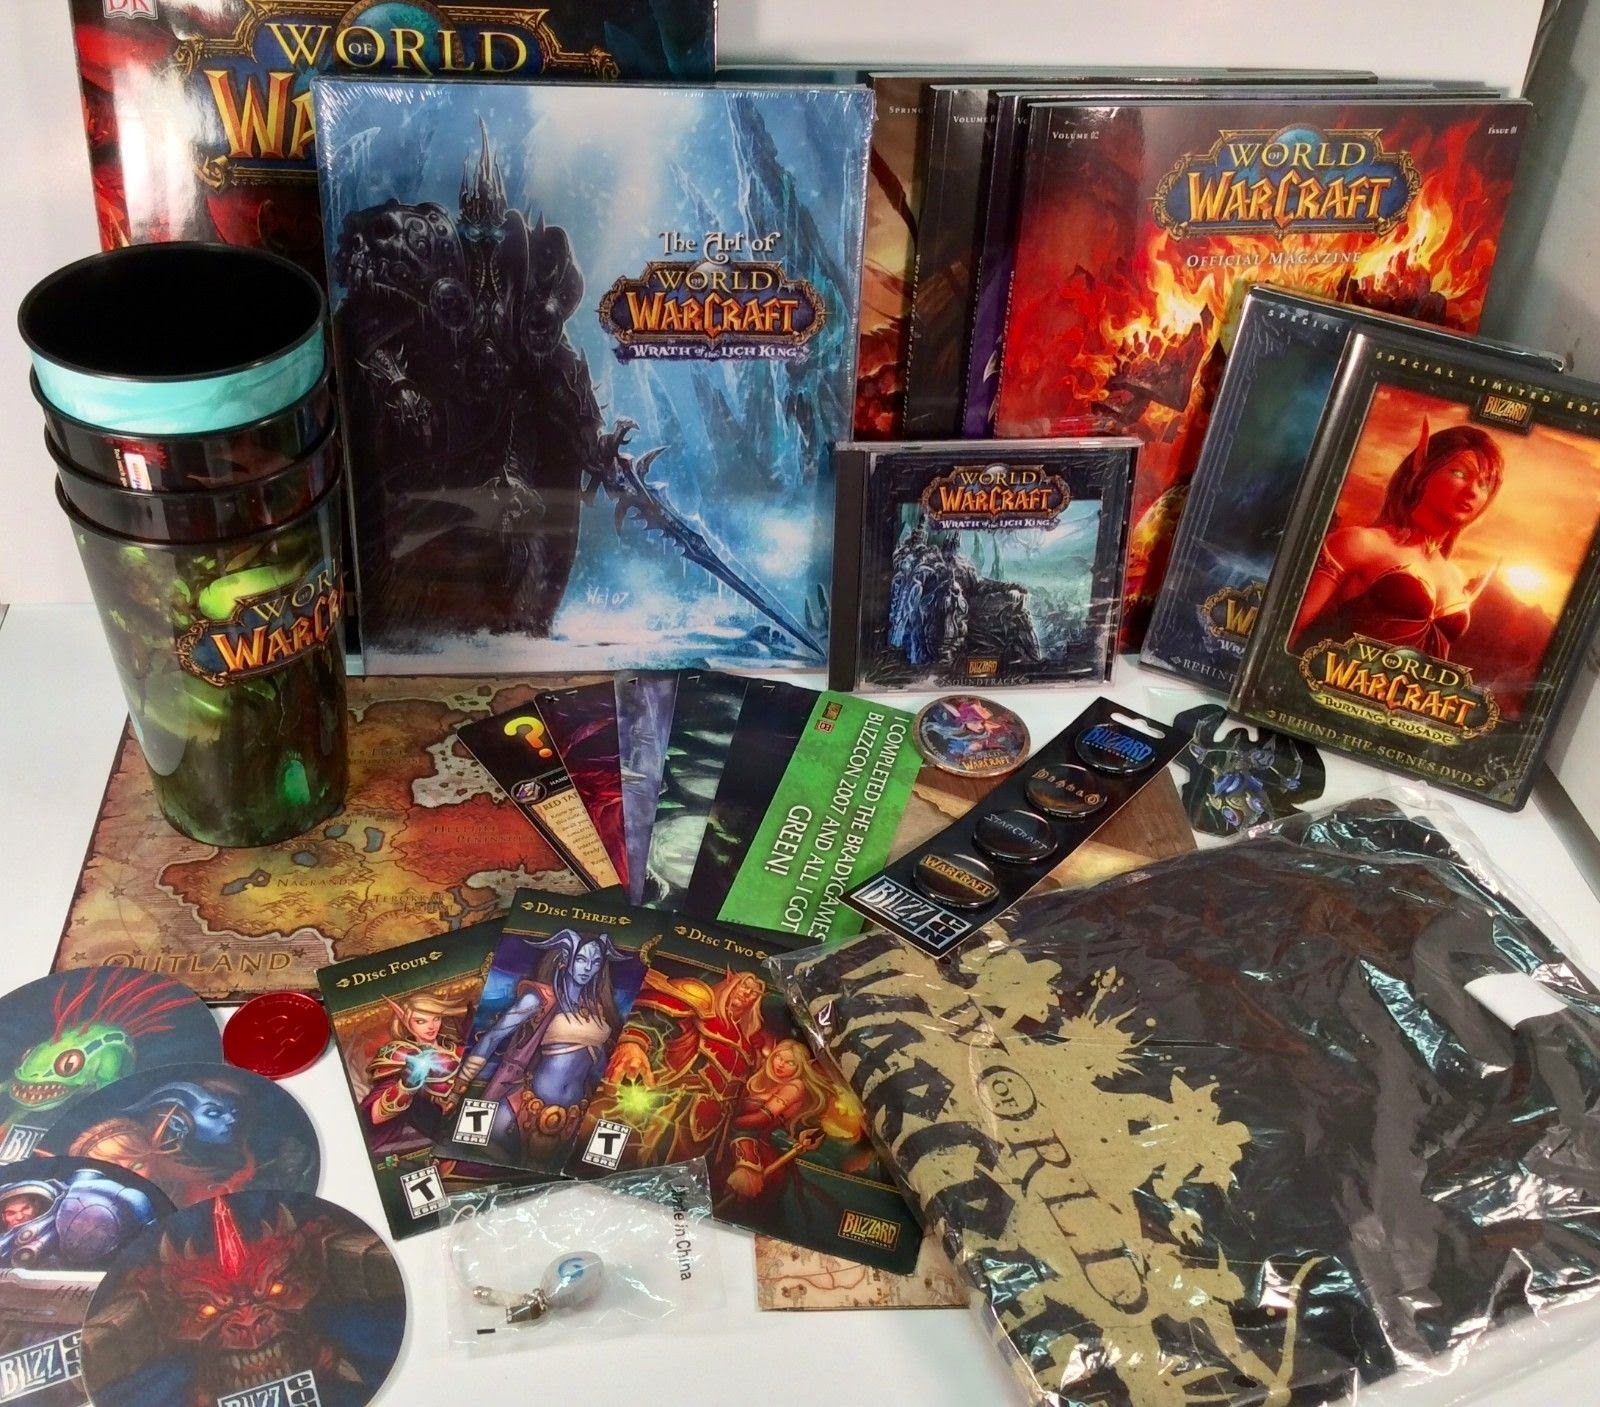 Gadźety World of Warcraft